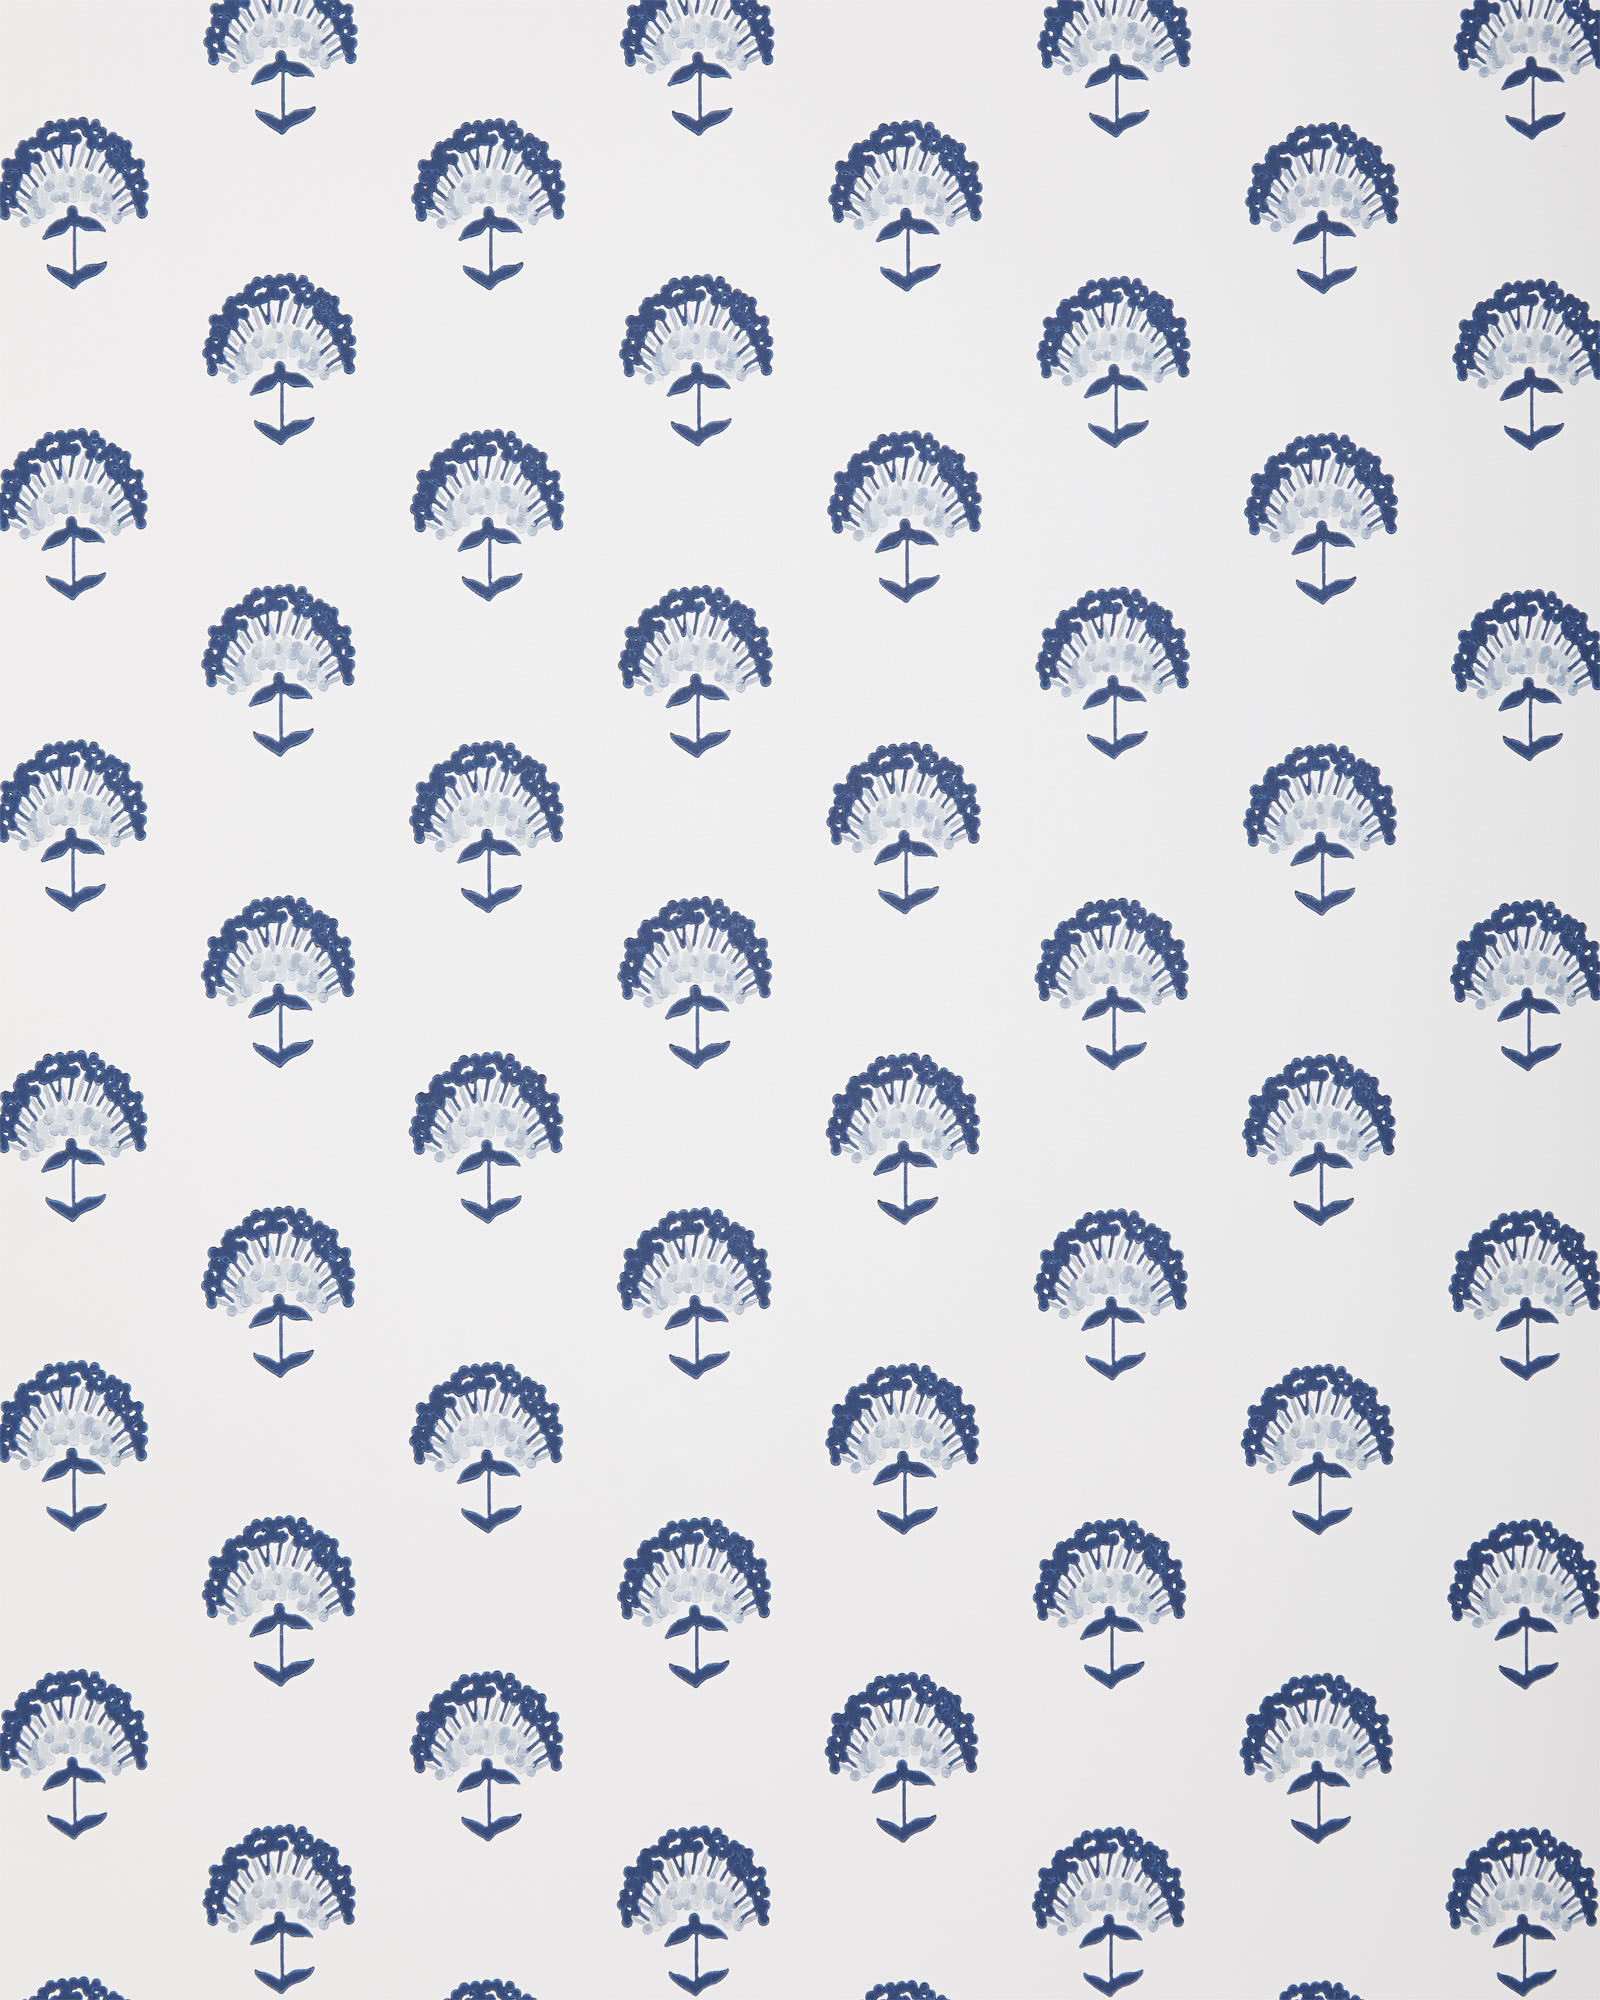 Astoria Wallpaper, Blue